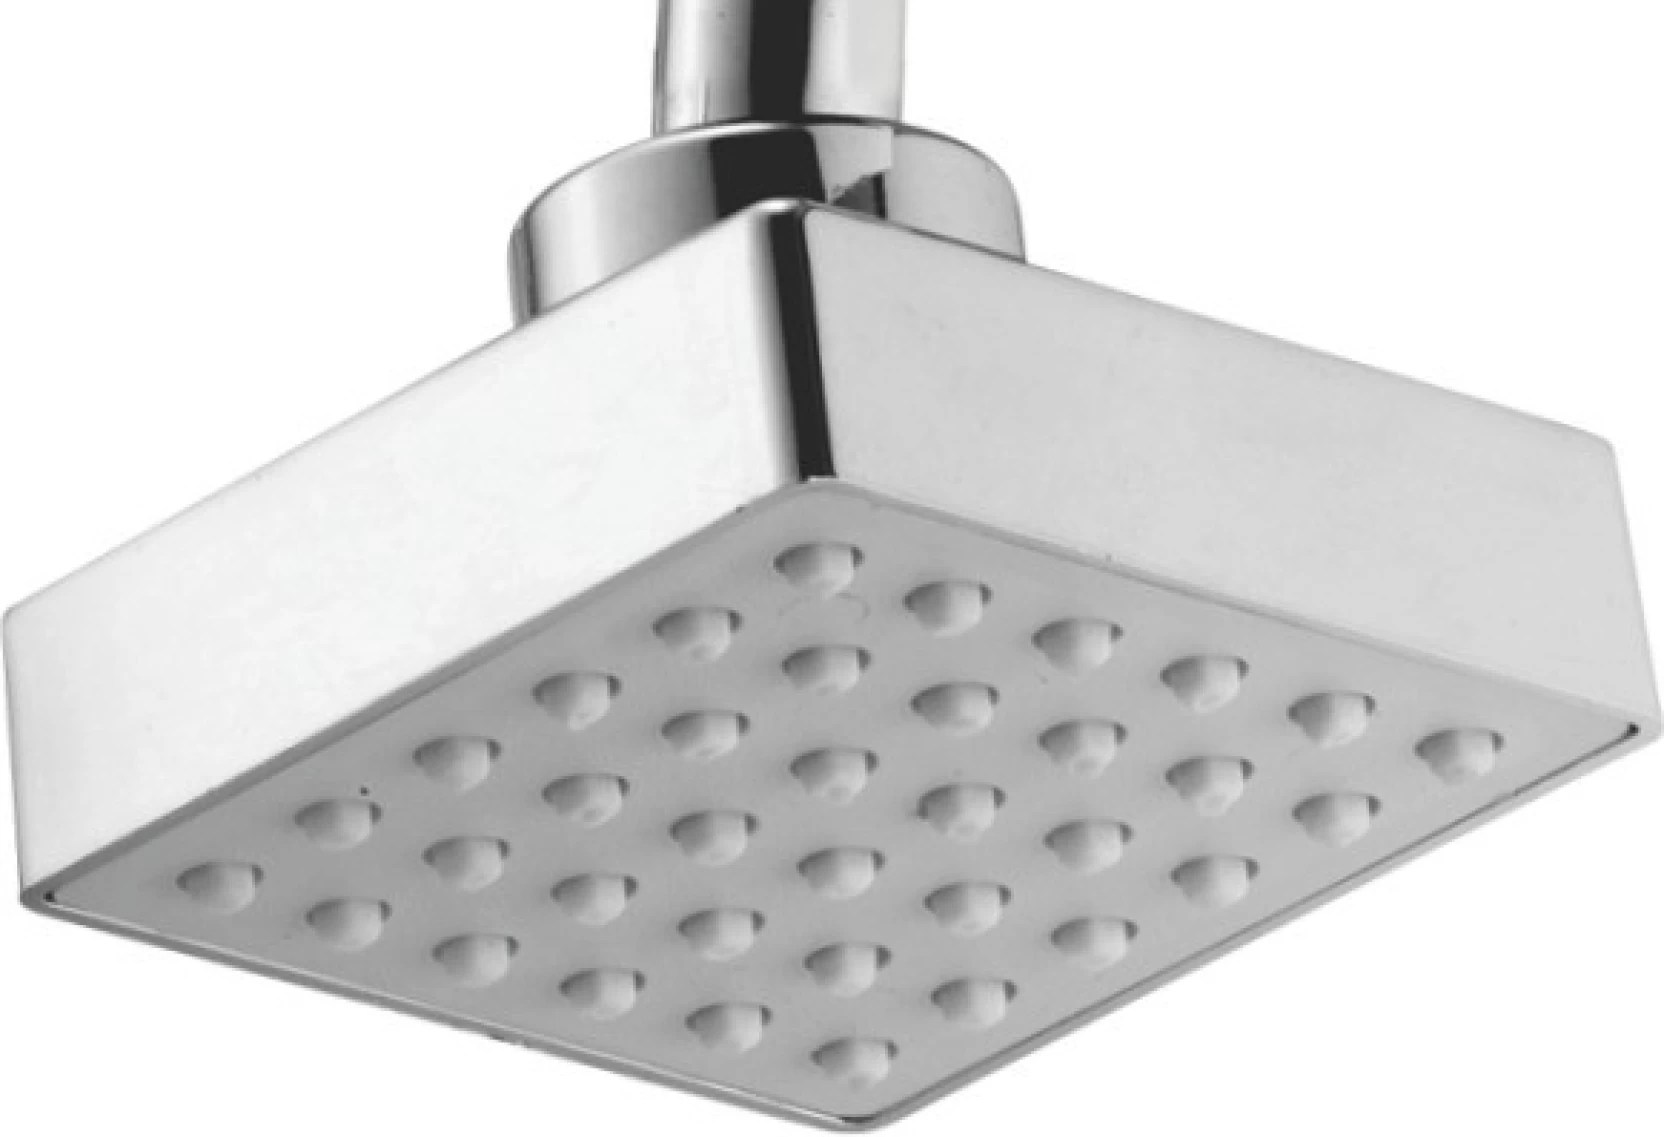 Touch Touch 3x3 Inch Square Overhead Rain Abs Shower Silver Shower Head